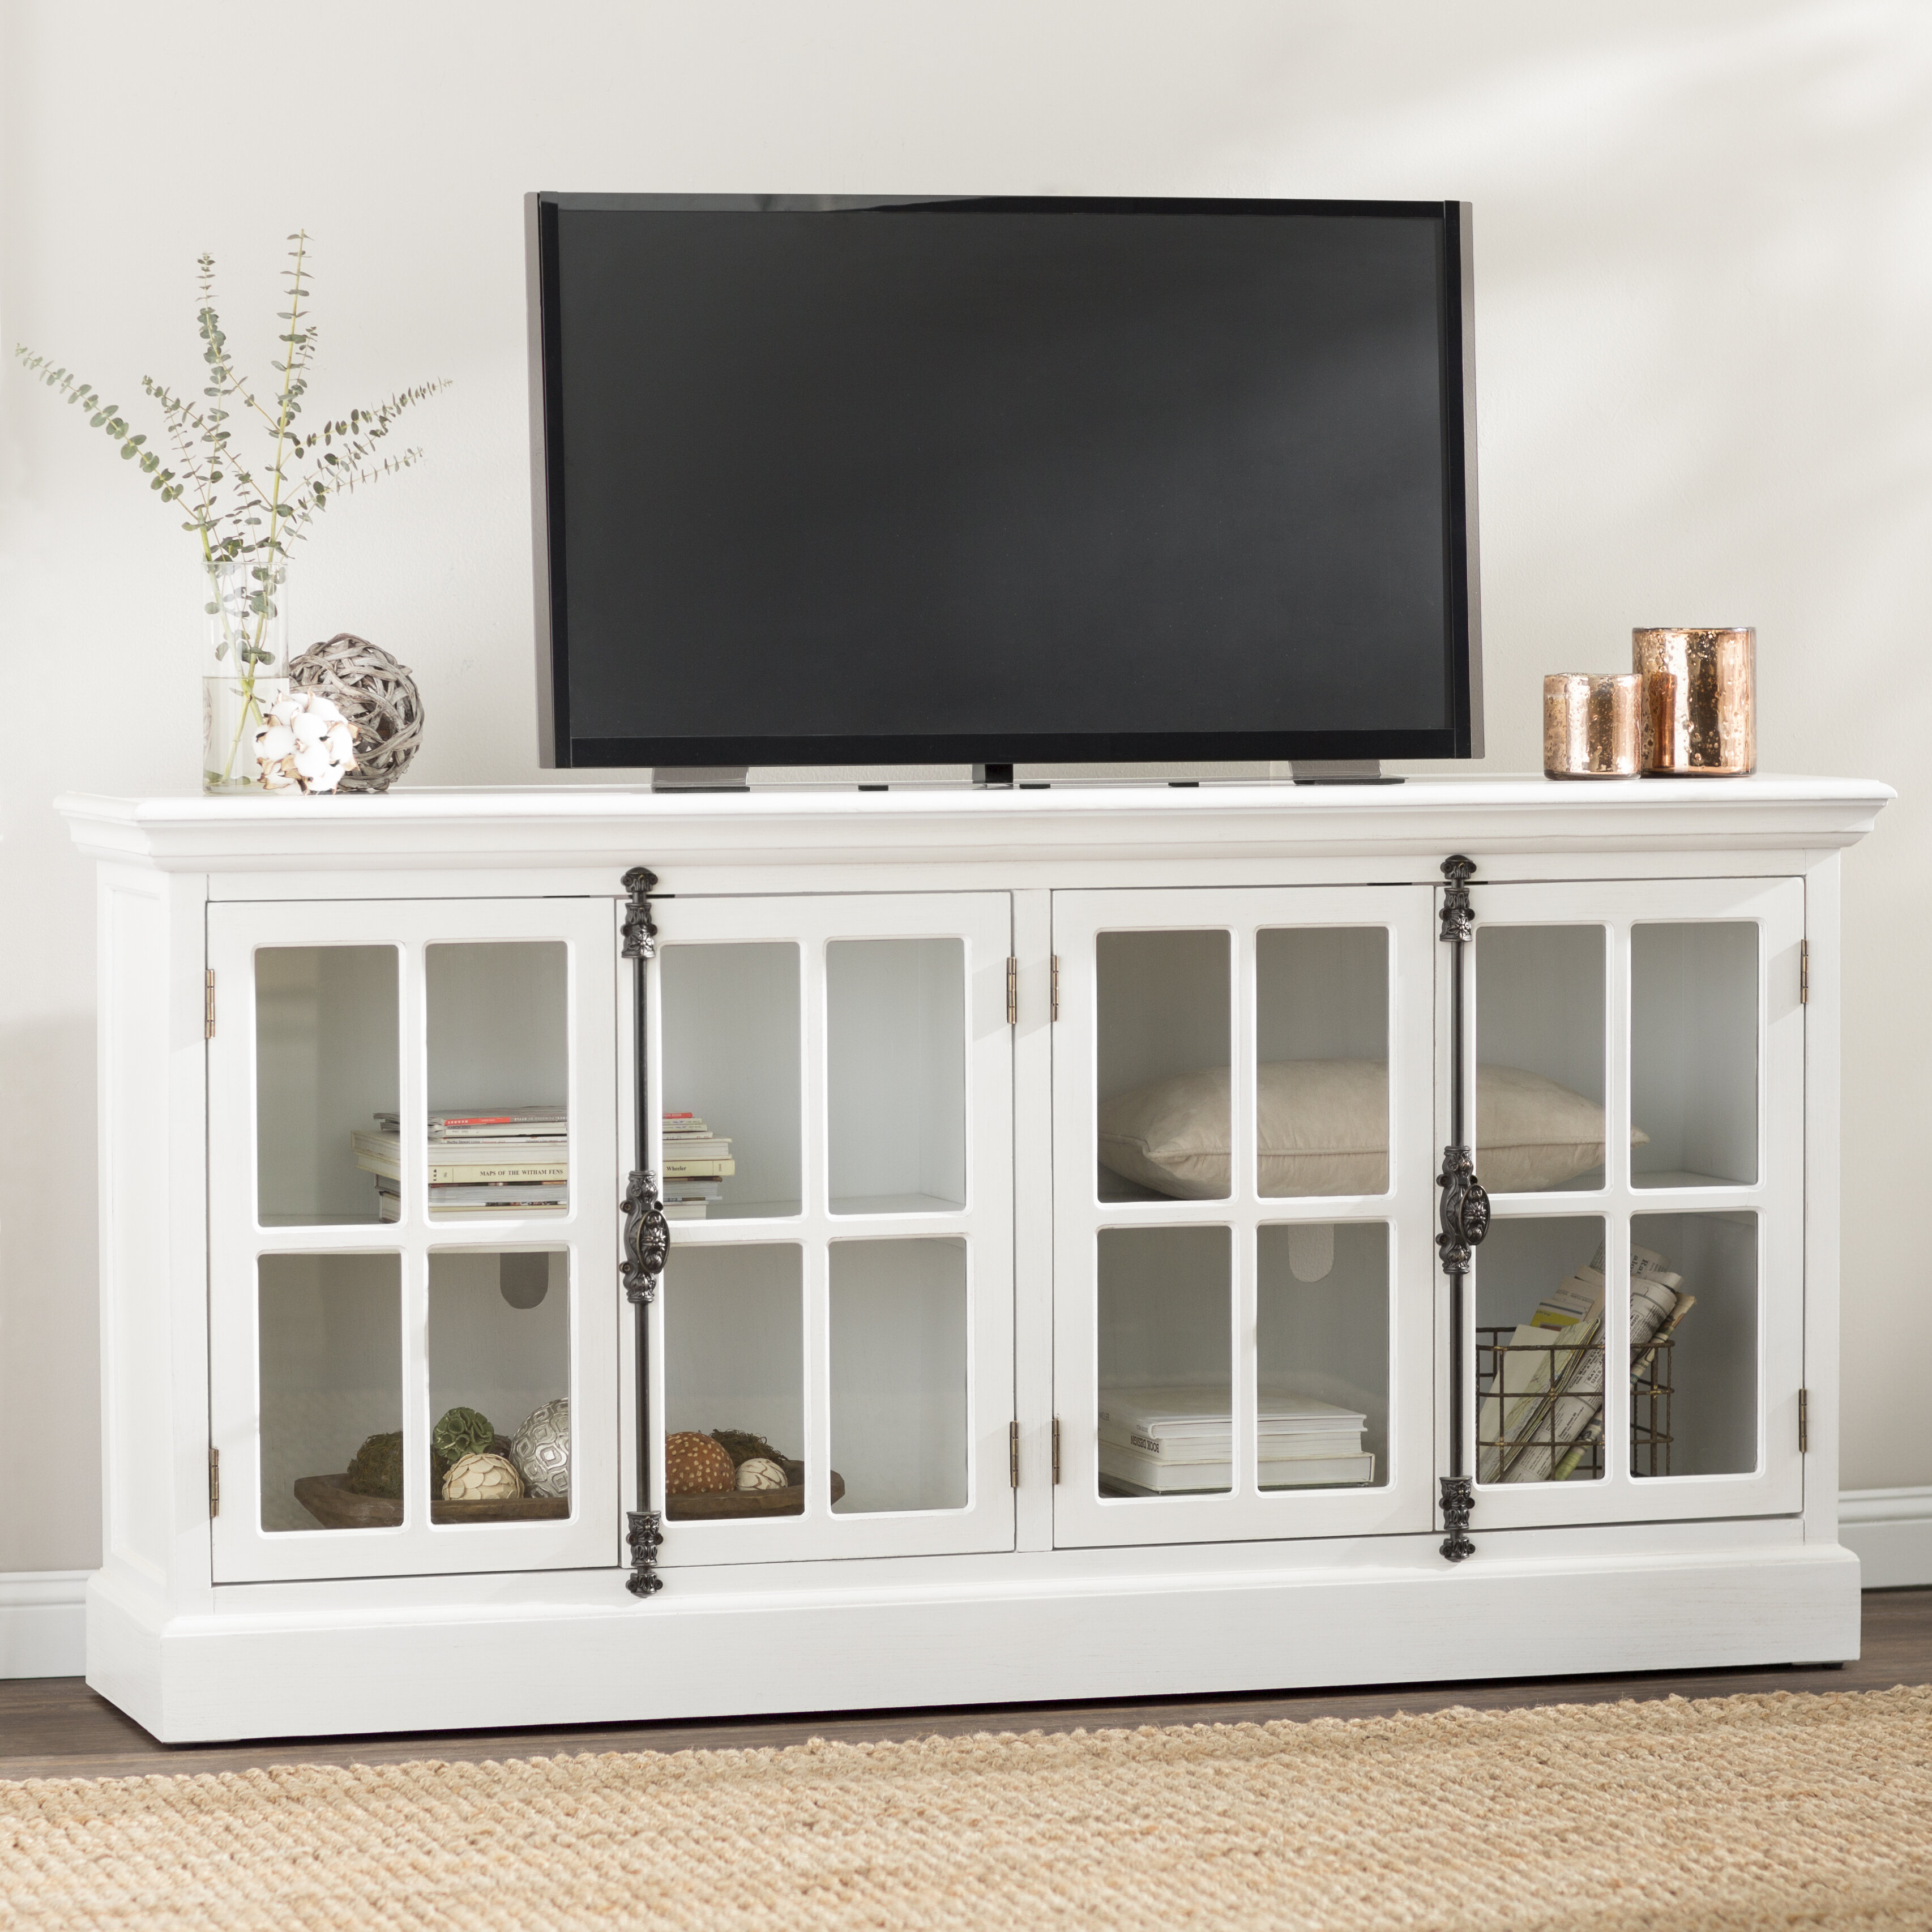 Black TV Stand Media Storage Entertainment Center Flat Screen Eco Friendly